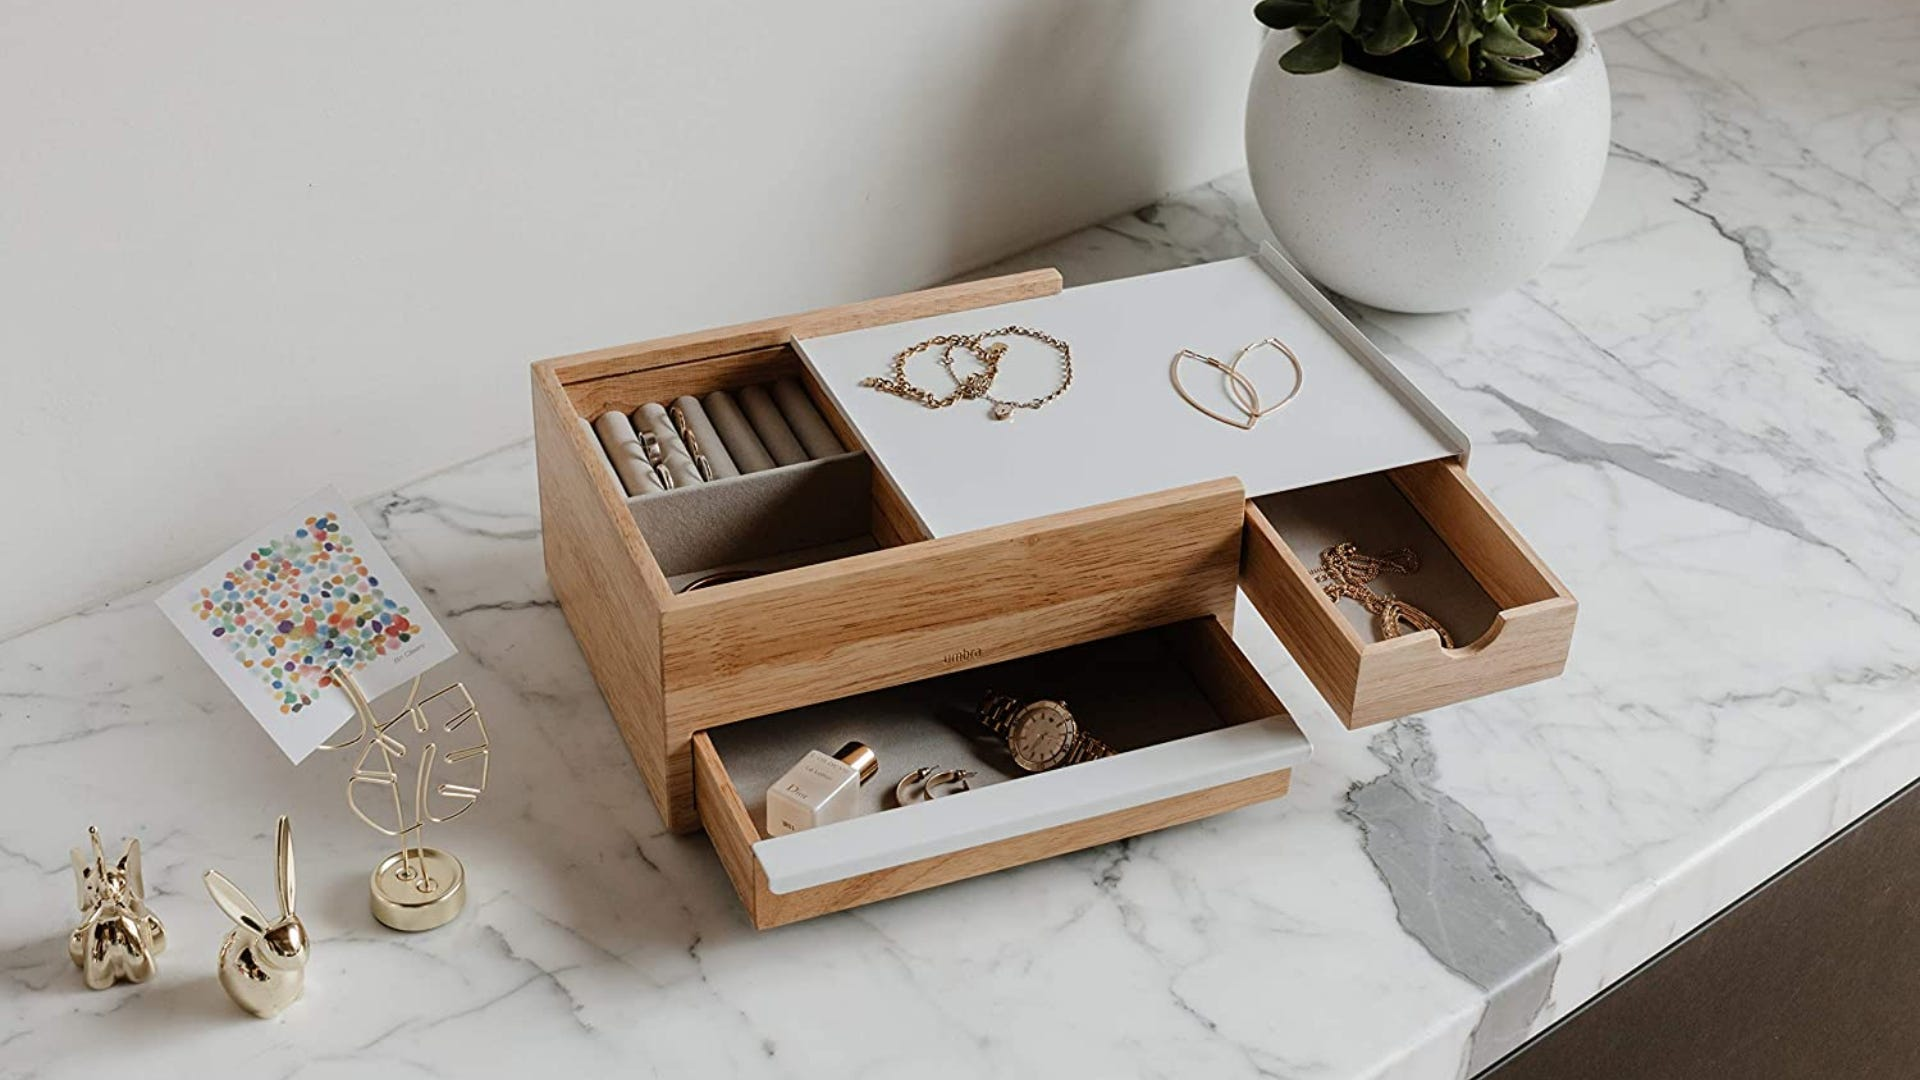 A top view of a wooden jewelry box with white accents holding gold jewelry.